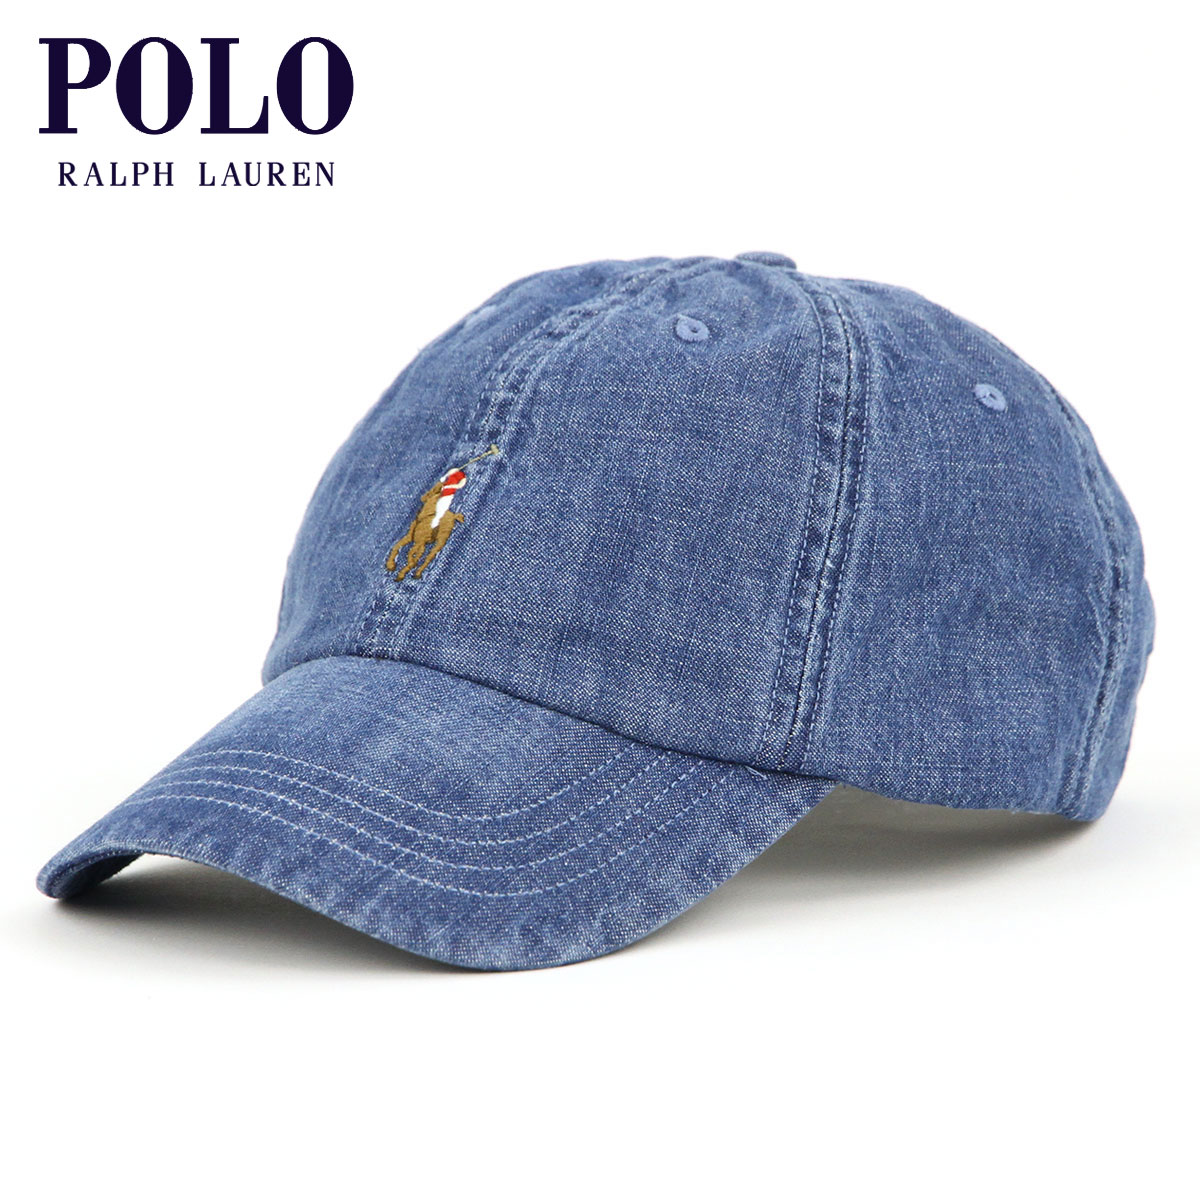 Rakuten Ichiba shop MIXON  Polo Ralph Lauren POLO RALPH LAUREN regular  article men hat cap COTTON CHINO BASEBALL CAP  93e922a77a2